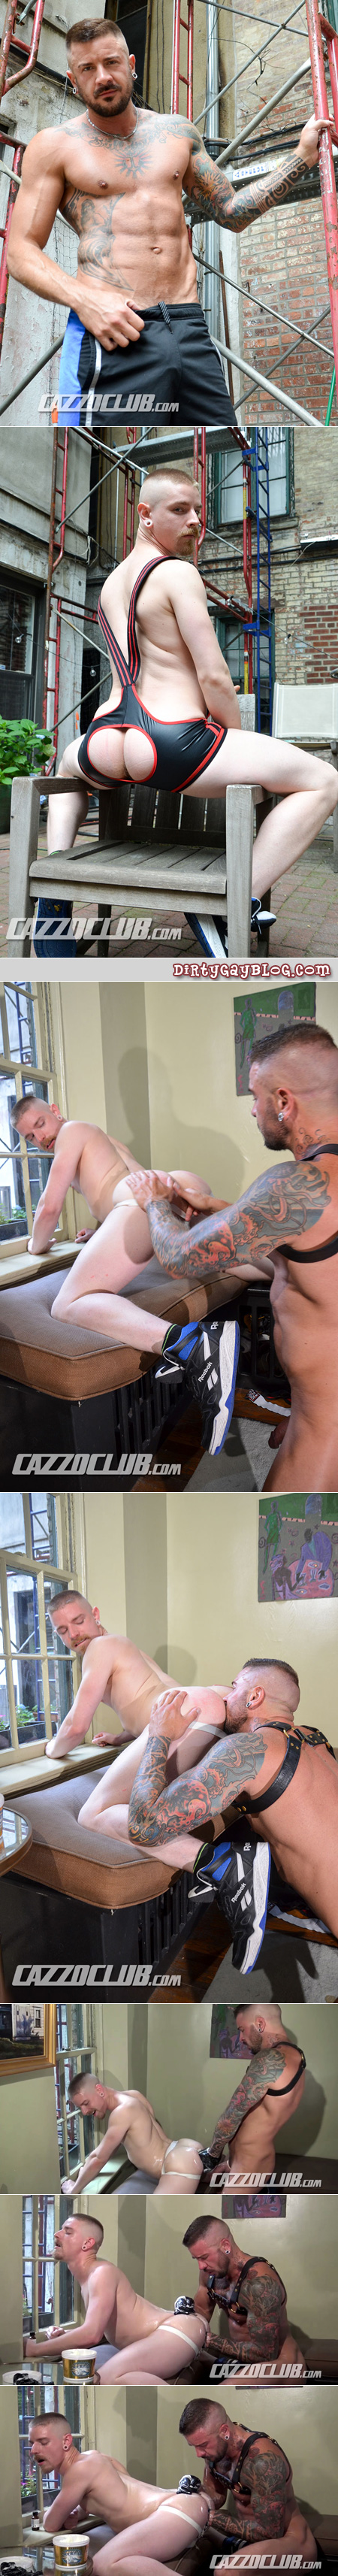 Tattooed leatherman fisting a smooth blonde sex pig.